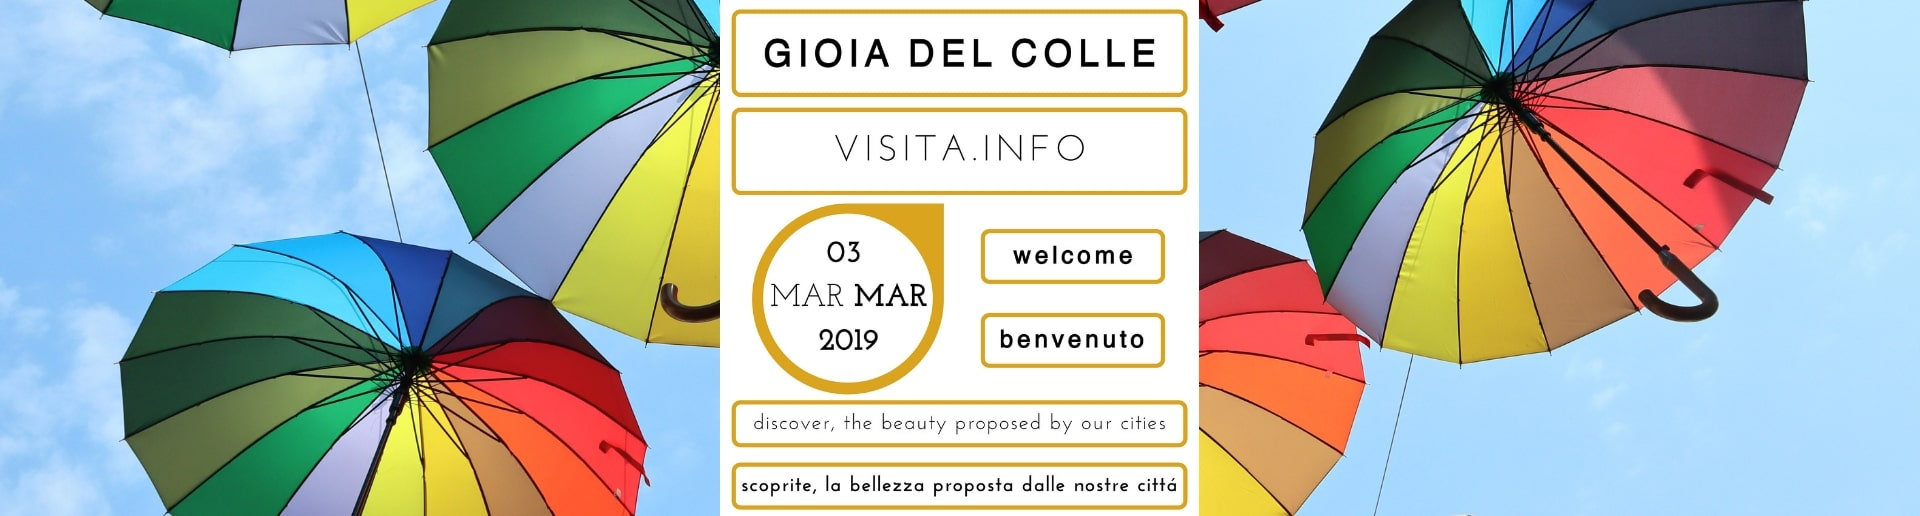 Sunday 3rd March 2019: plan your visit to Gioia del Colle (Bari, Puglia, Italy)